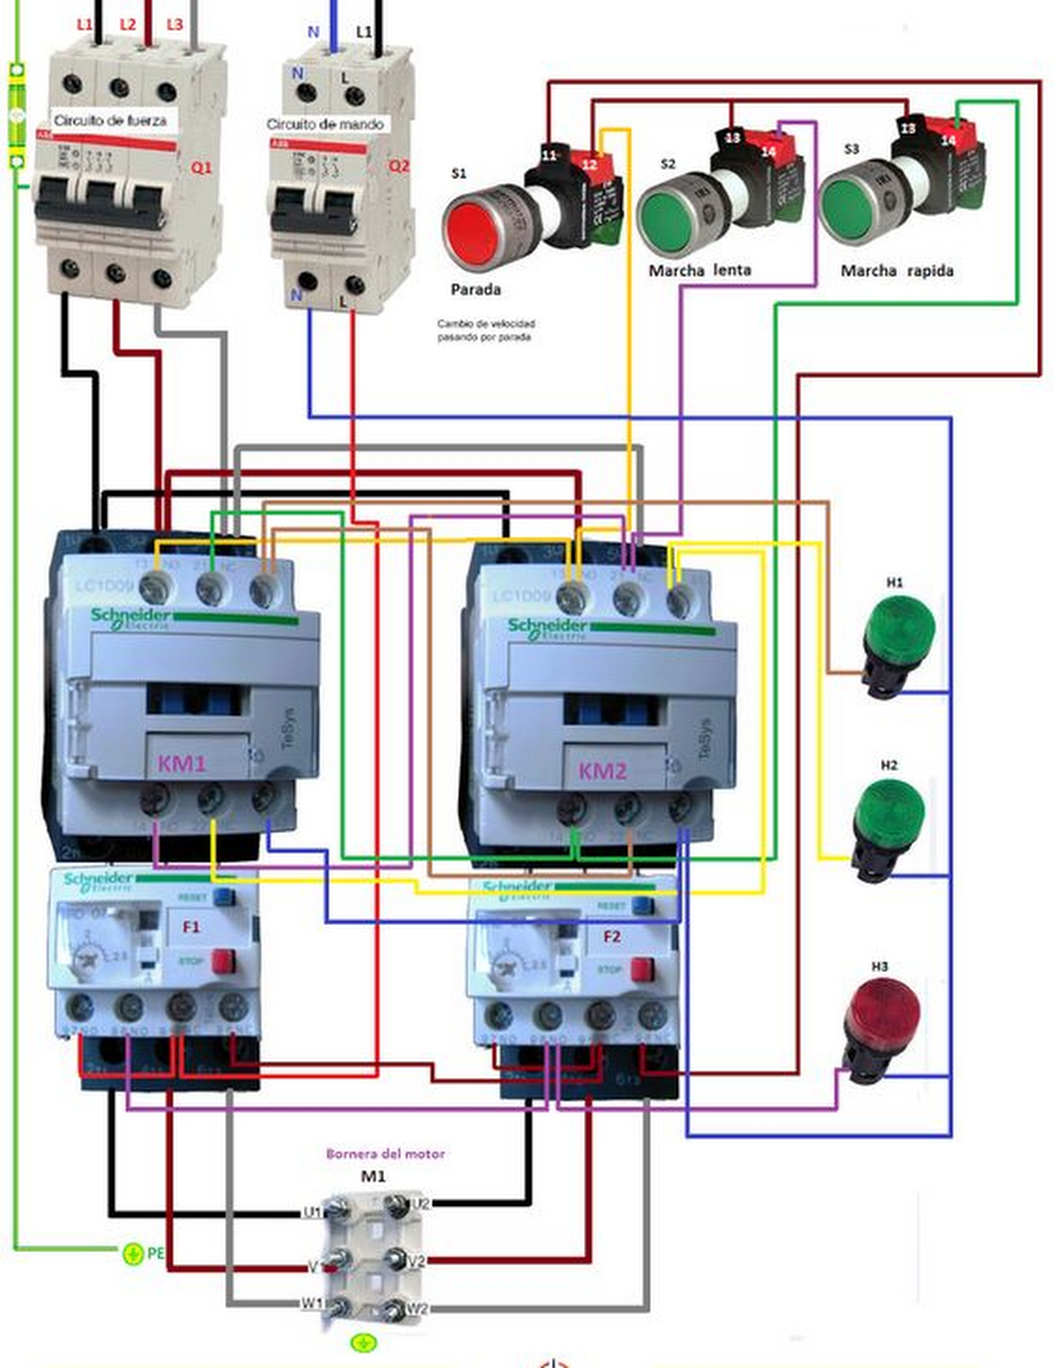 Motor Winding Connection | Electrical Engineering World | solar ...